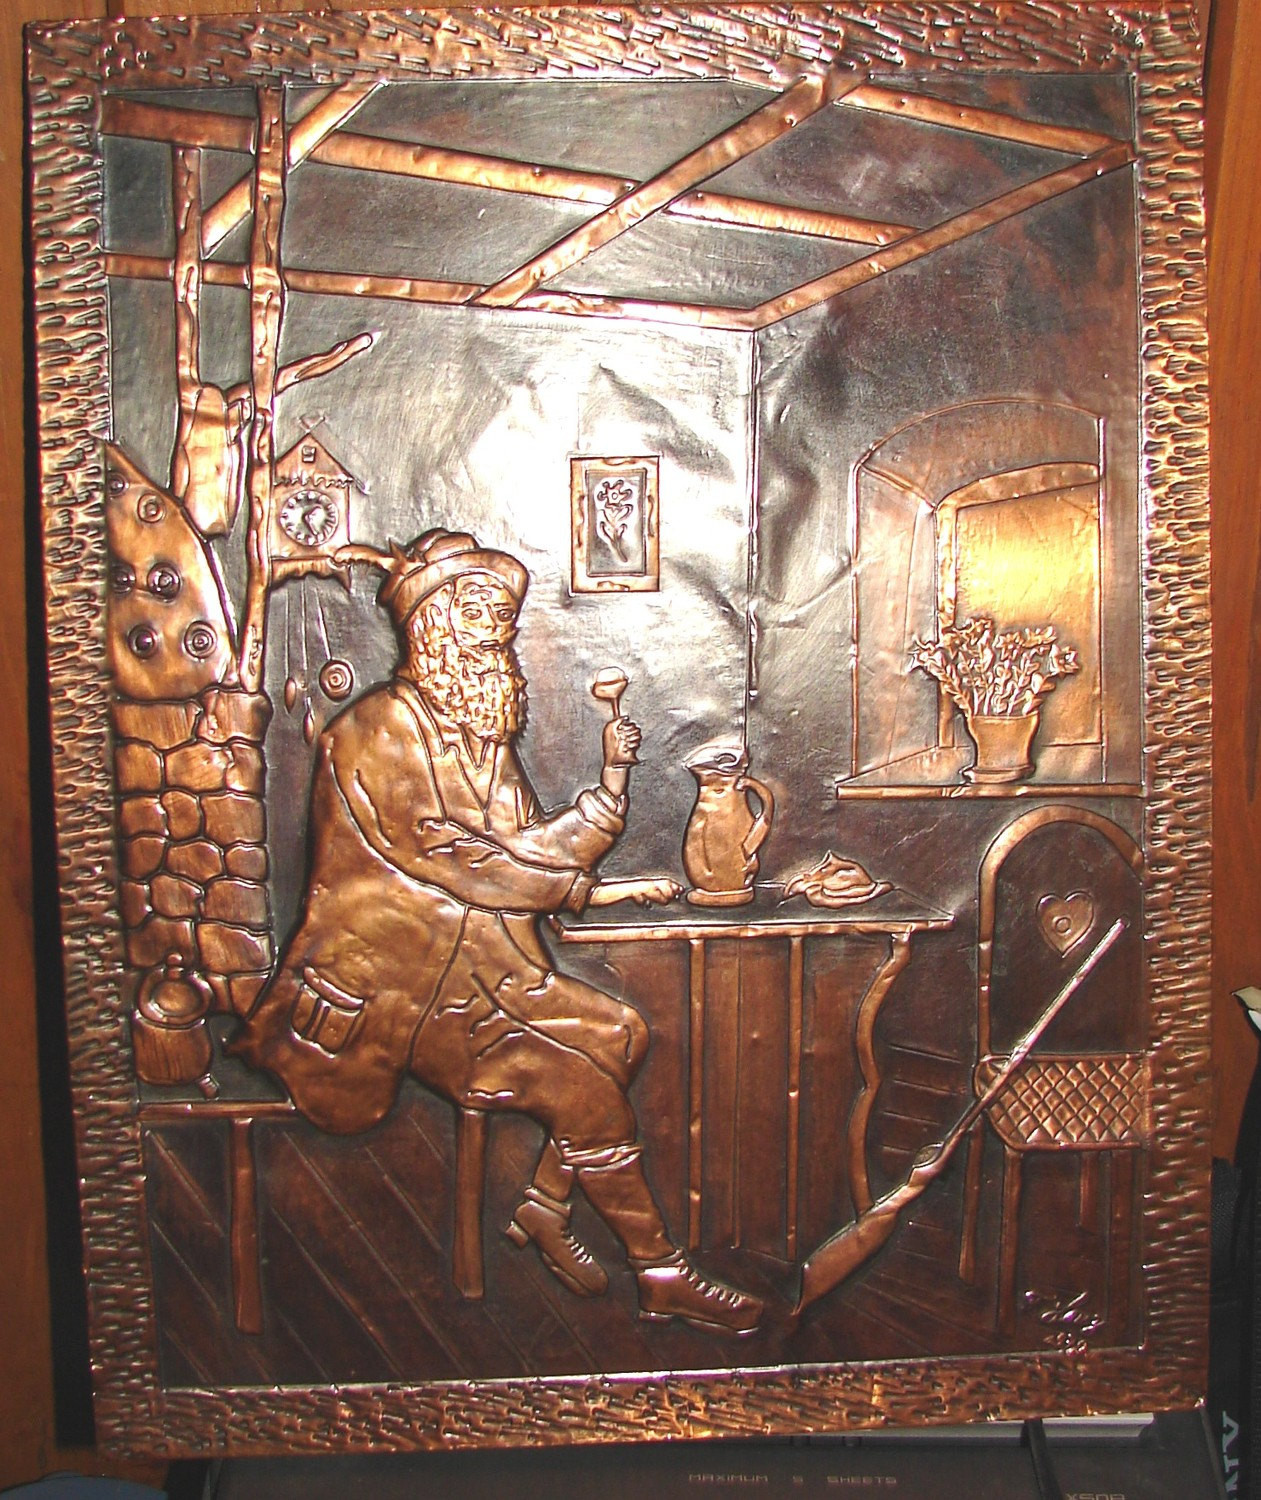 Best ideas about Copper Wall Art . Save or Pin German Antique Copper Wall Art Now.